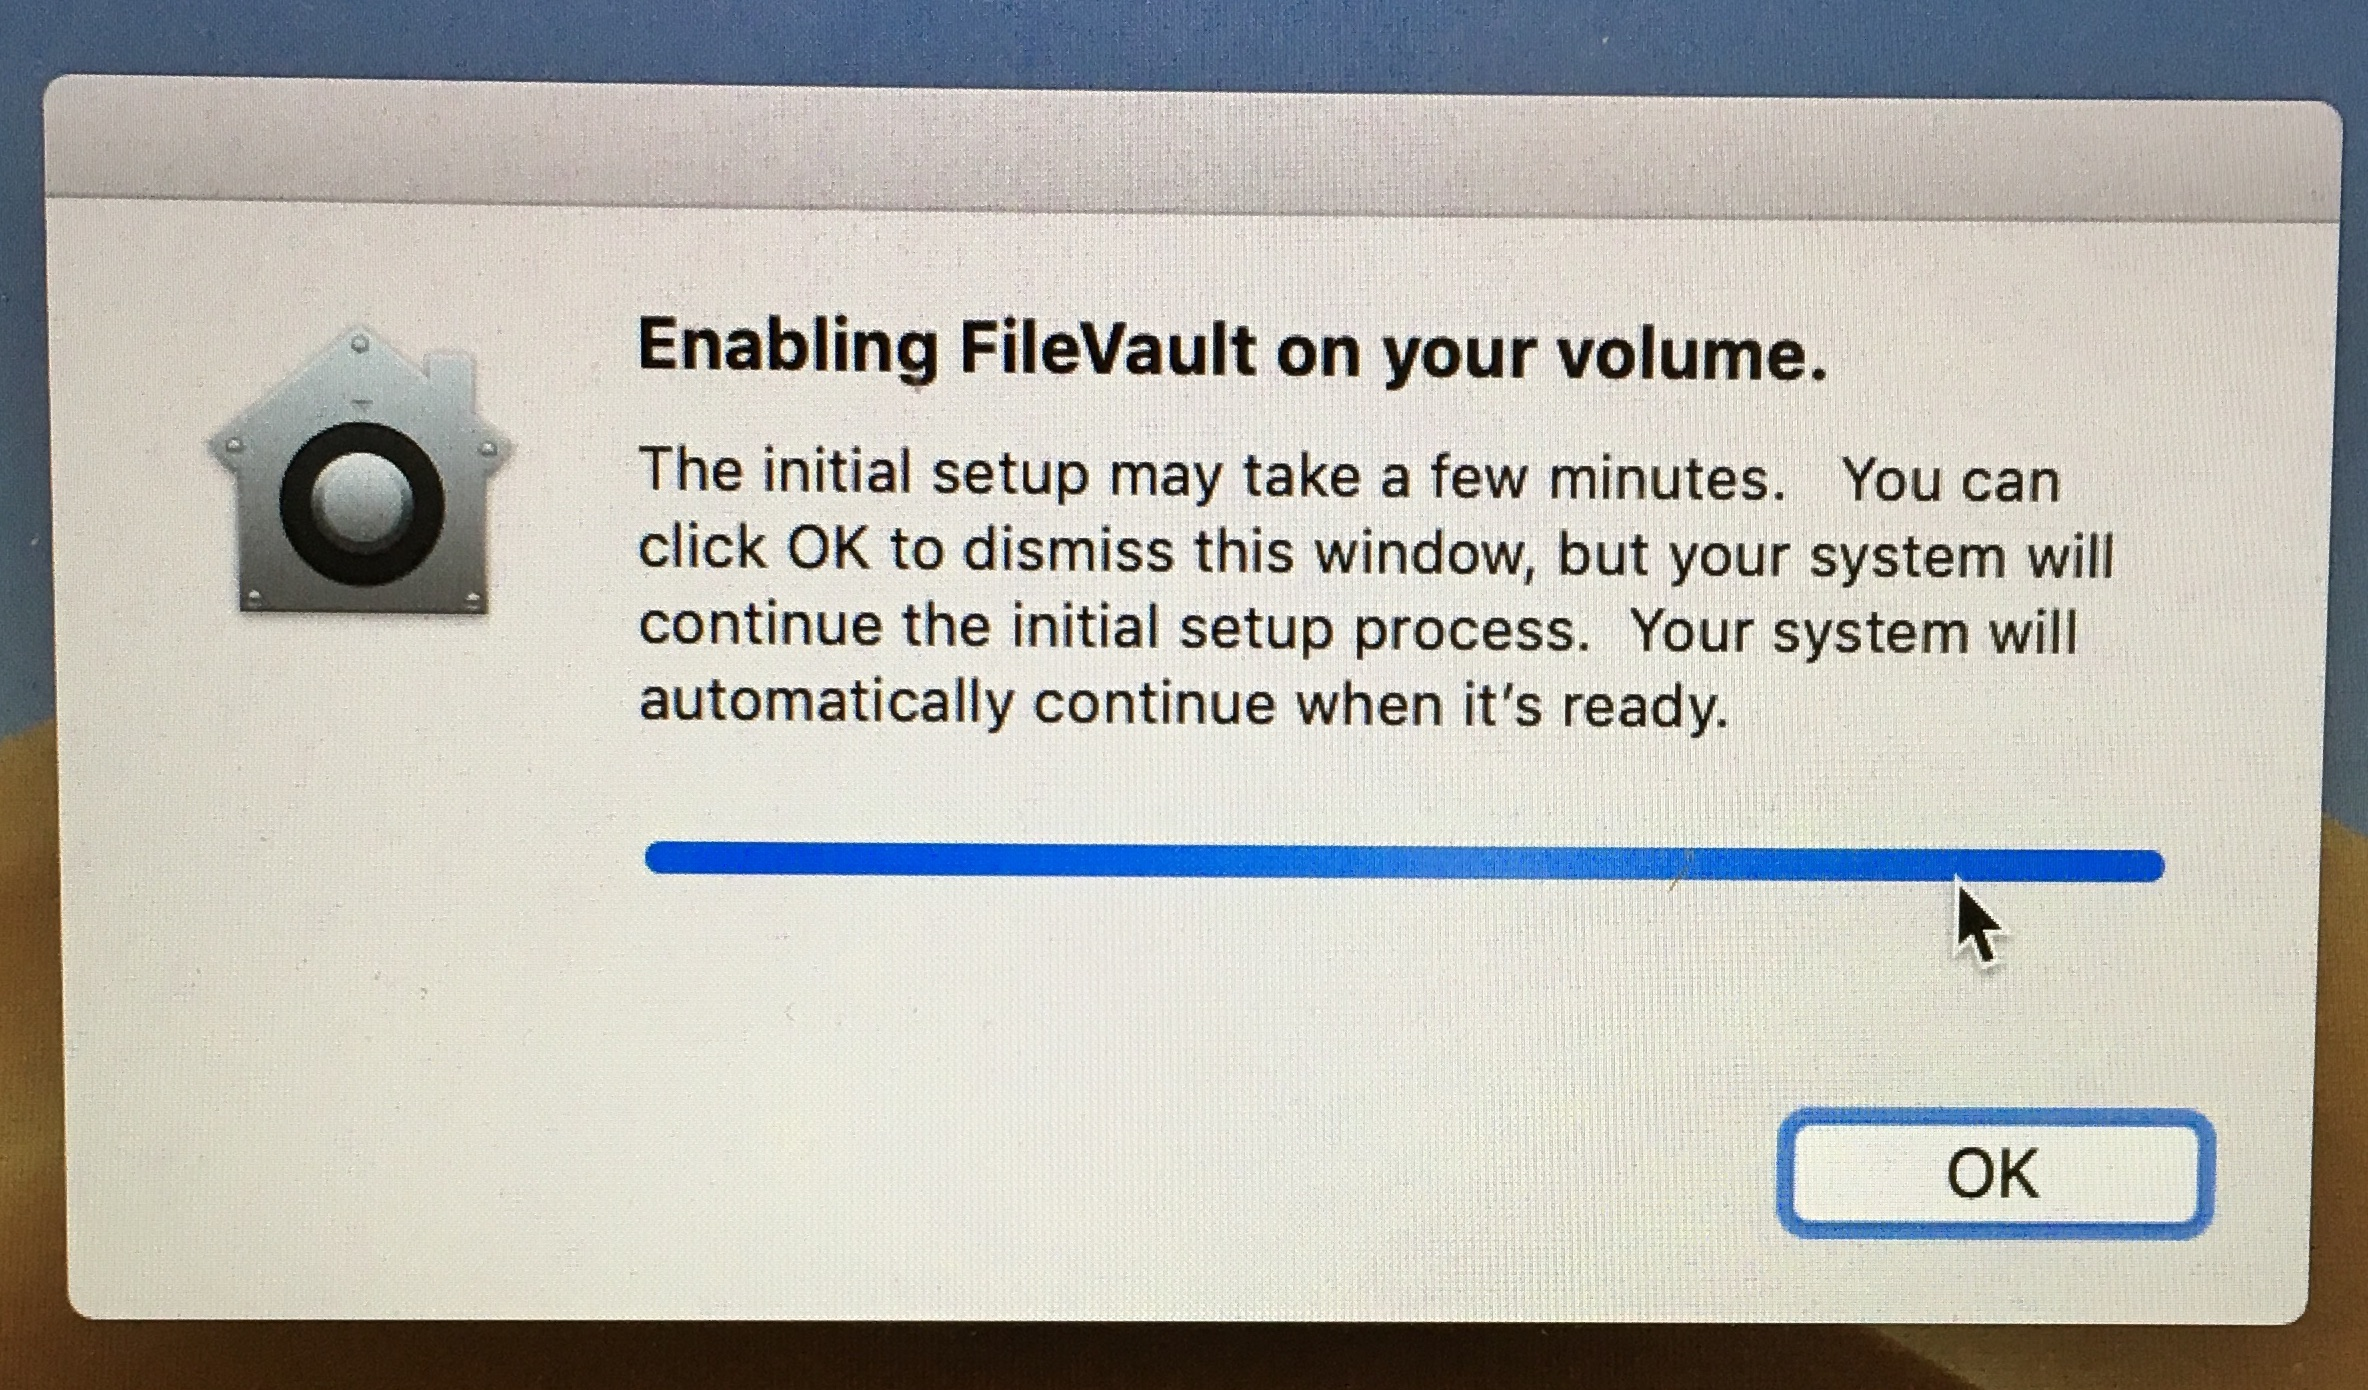 Enabling FileVault on your volume.